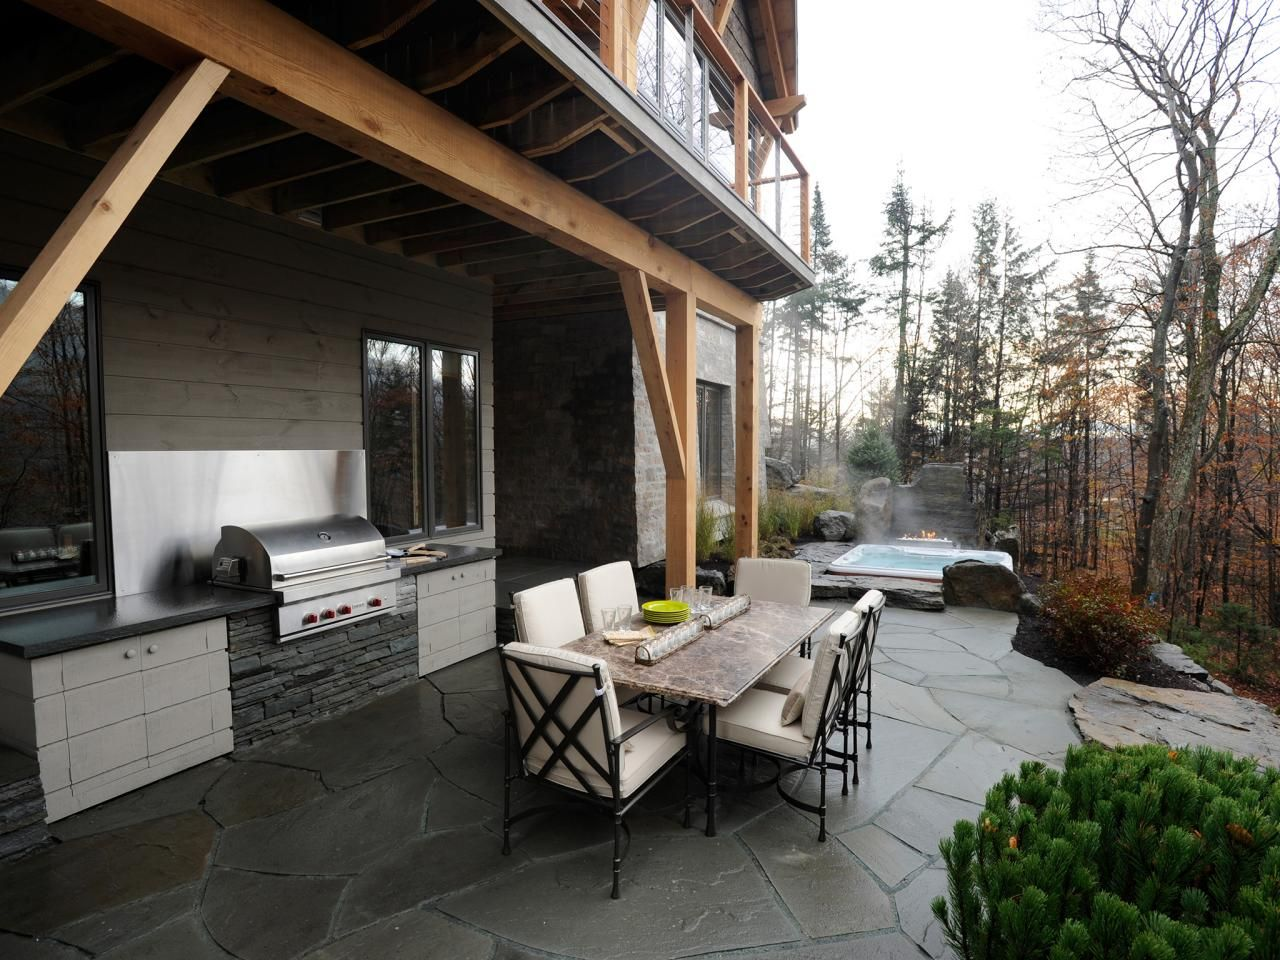 55 Patio Bars + Outdoor Dining Rooms